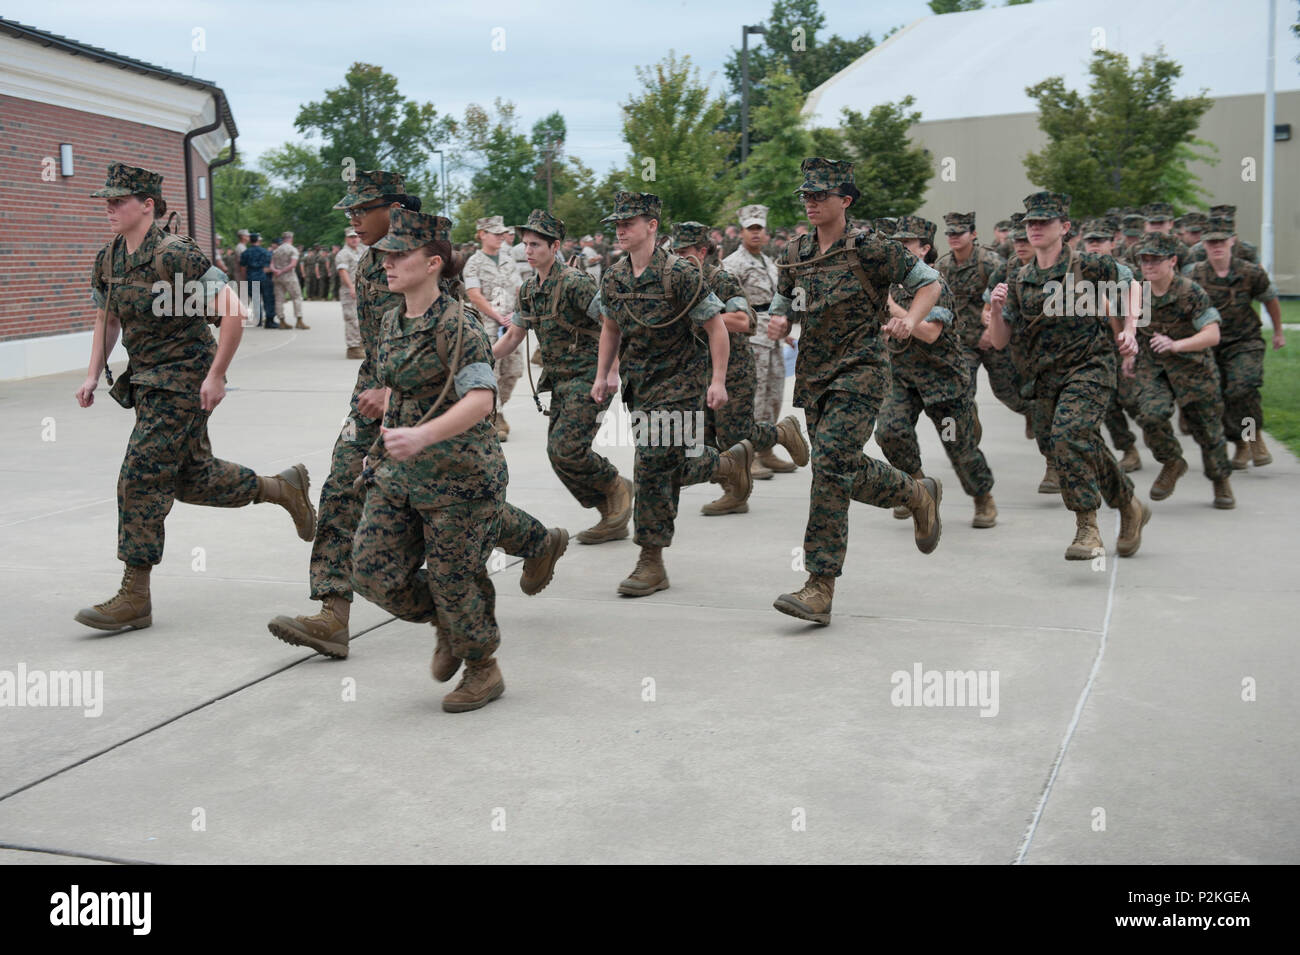 Candidates move their formation as ordered by U.S. Marine Drill Instructor Gunnery Sgt. Nickea Redding, after the Commander's Orientation, Officer Candidate School (OCS) at Marine Corps Base Quantico, Va., Sept. 15, 2016. The mission of OCS is to train, screen and evaluate candidates, who must demonstrate a high level of leadership potential and commitment to success in order to earn a commission. (U.S. Marine Corps photo by Lance Cpl. Yasmin D. Perez) - Stock Image